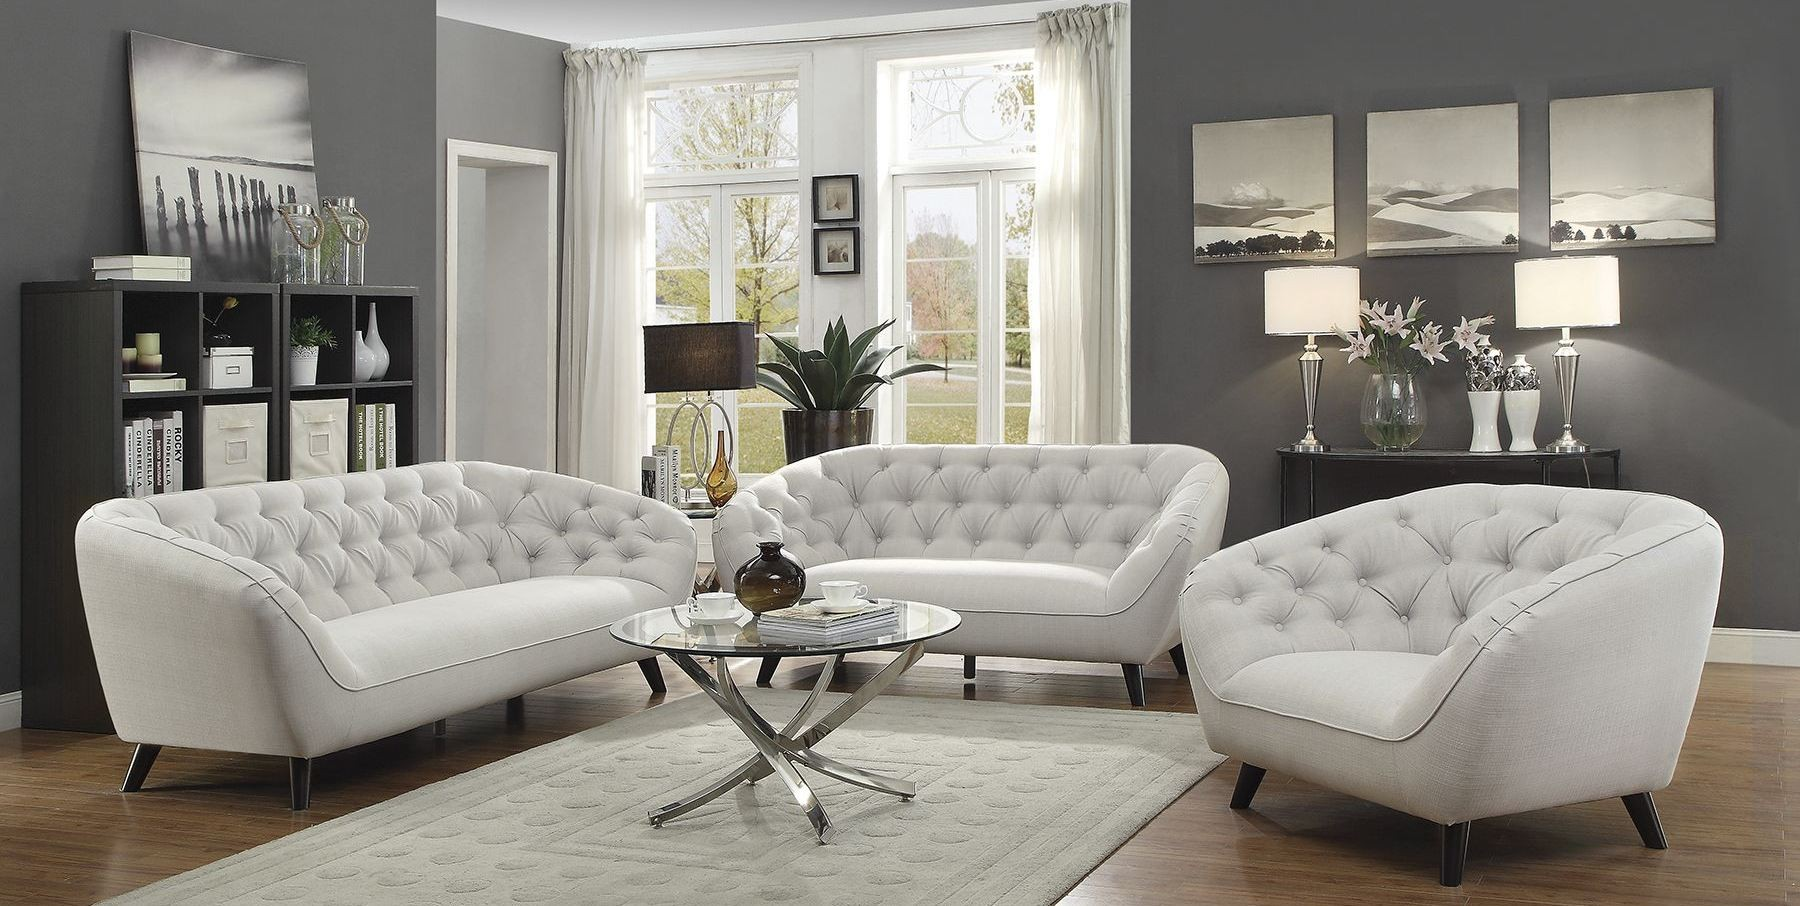 Faymoor klein silver living room set 505911 coaster furniture